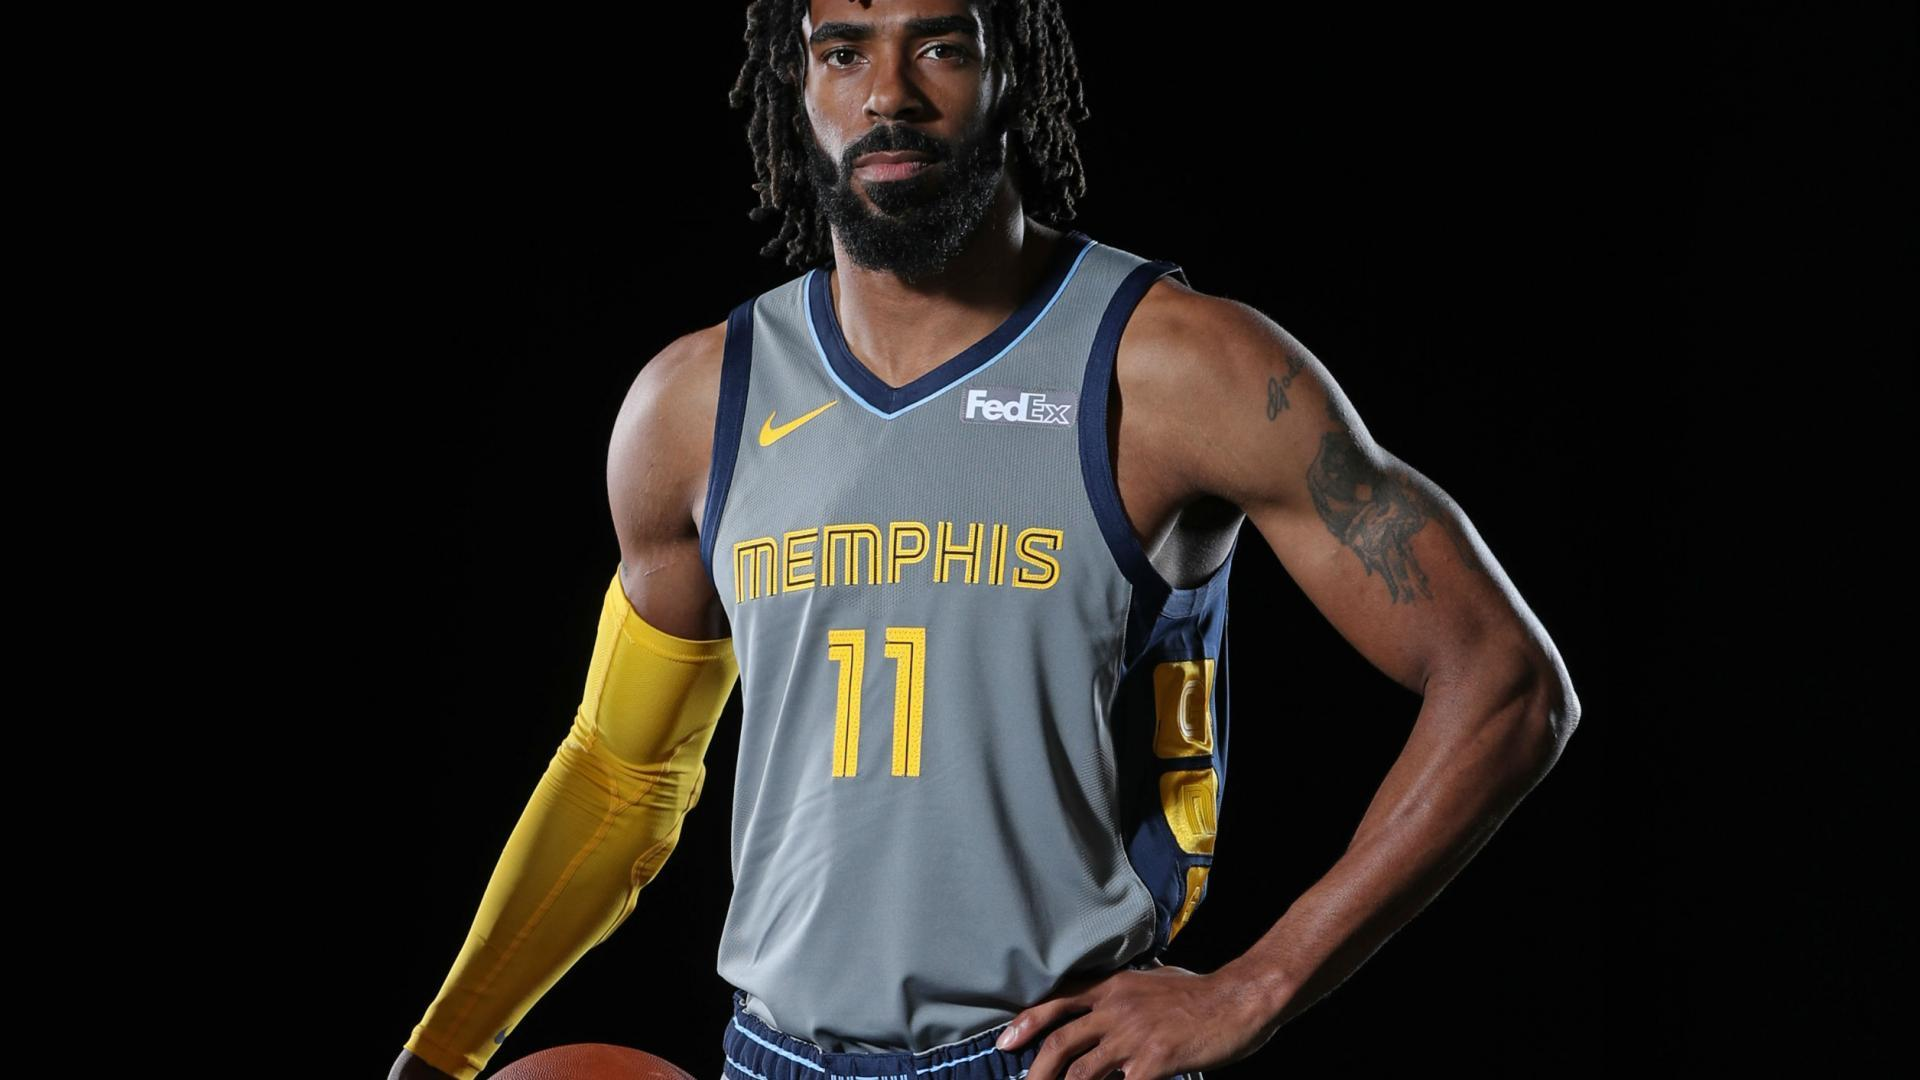 cc175f3fbea7 The Grizzlies will wear their City Edition uniforms six times in 2018-19.